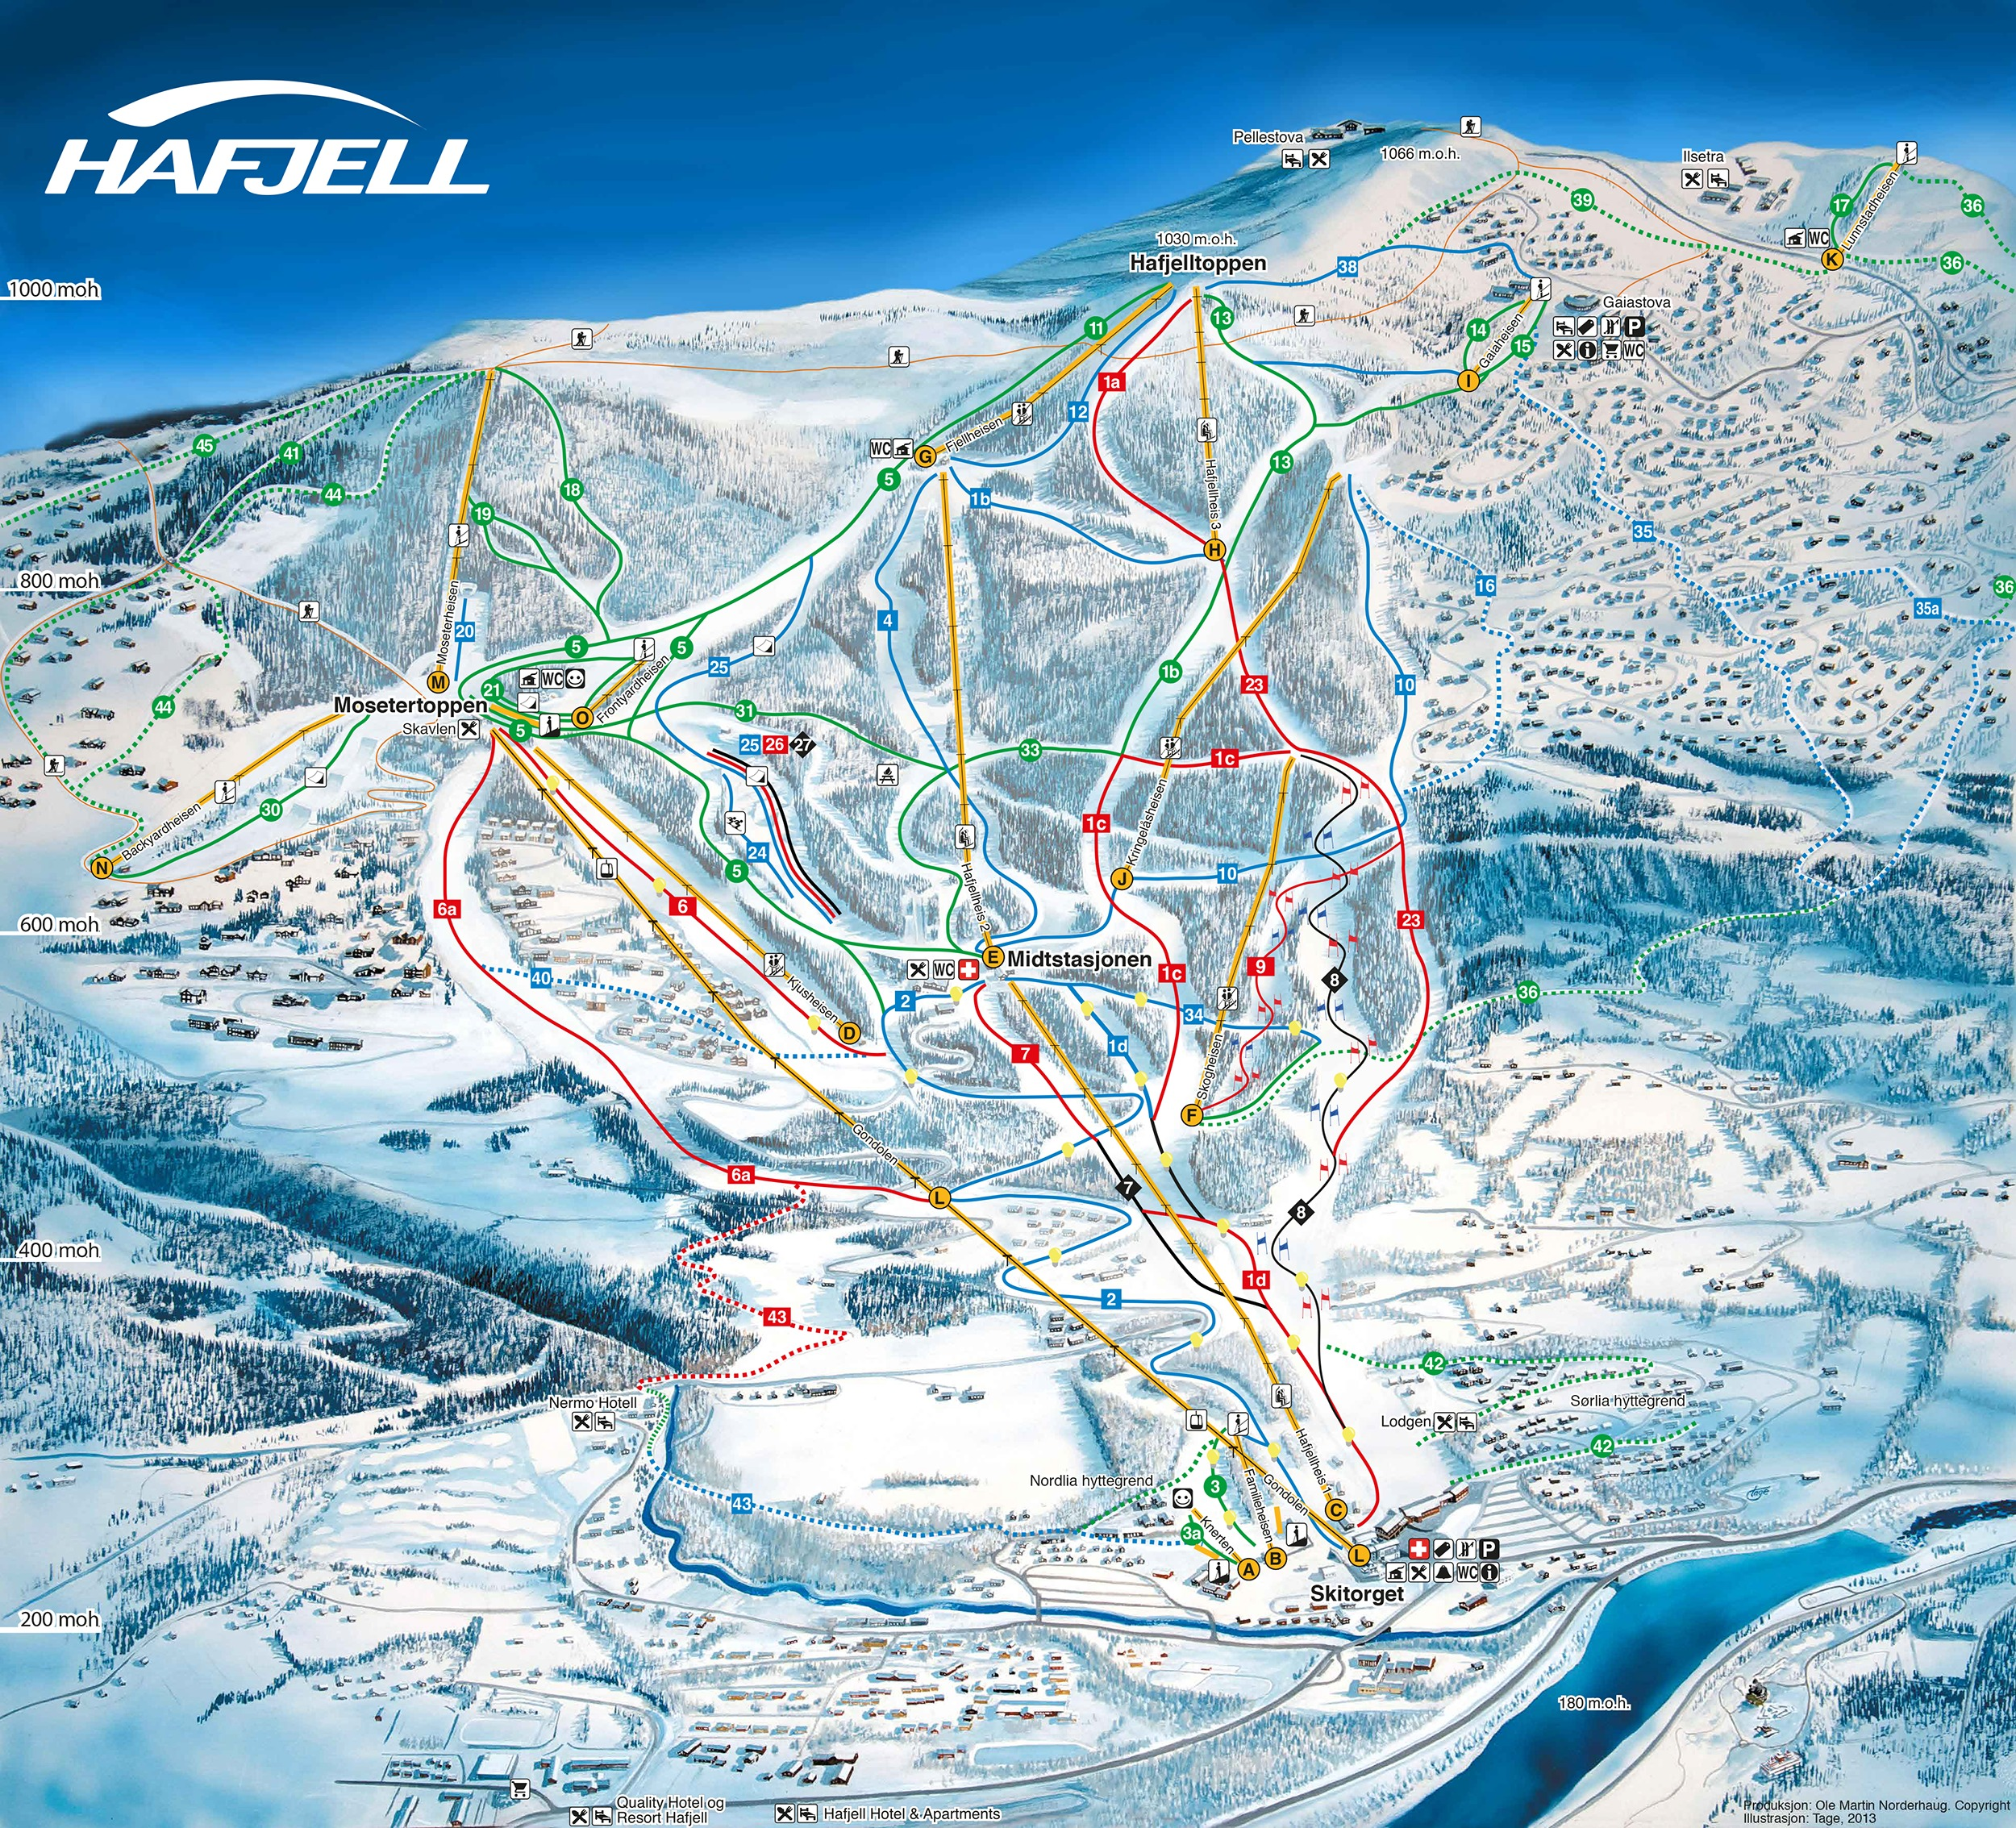 Hafjell Piste Map Plan of ski slopes and lifts OnTheSnow